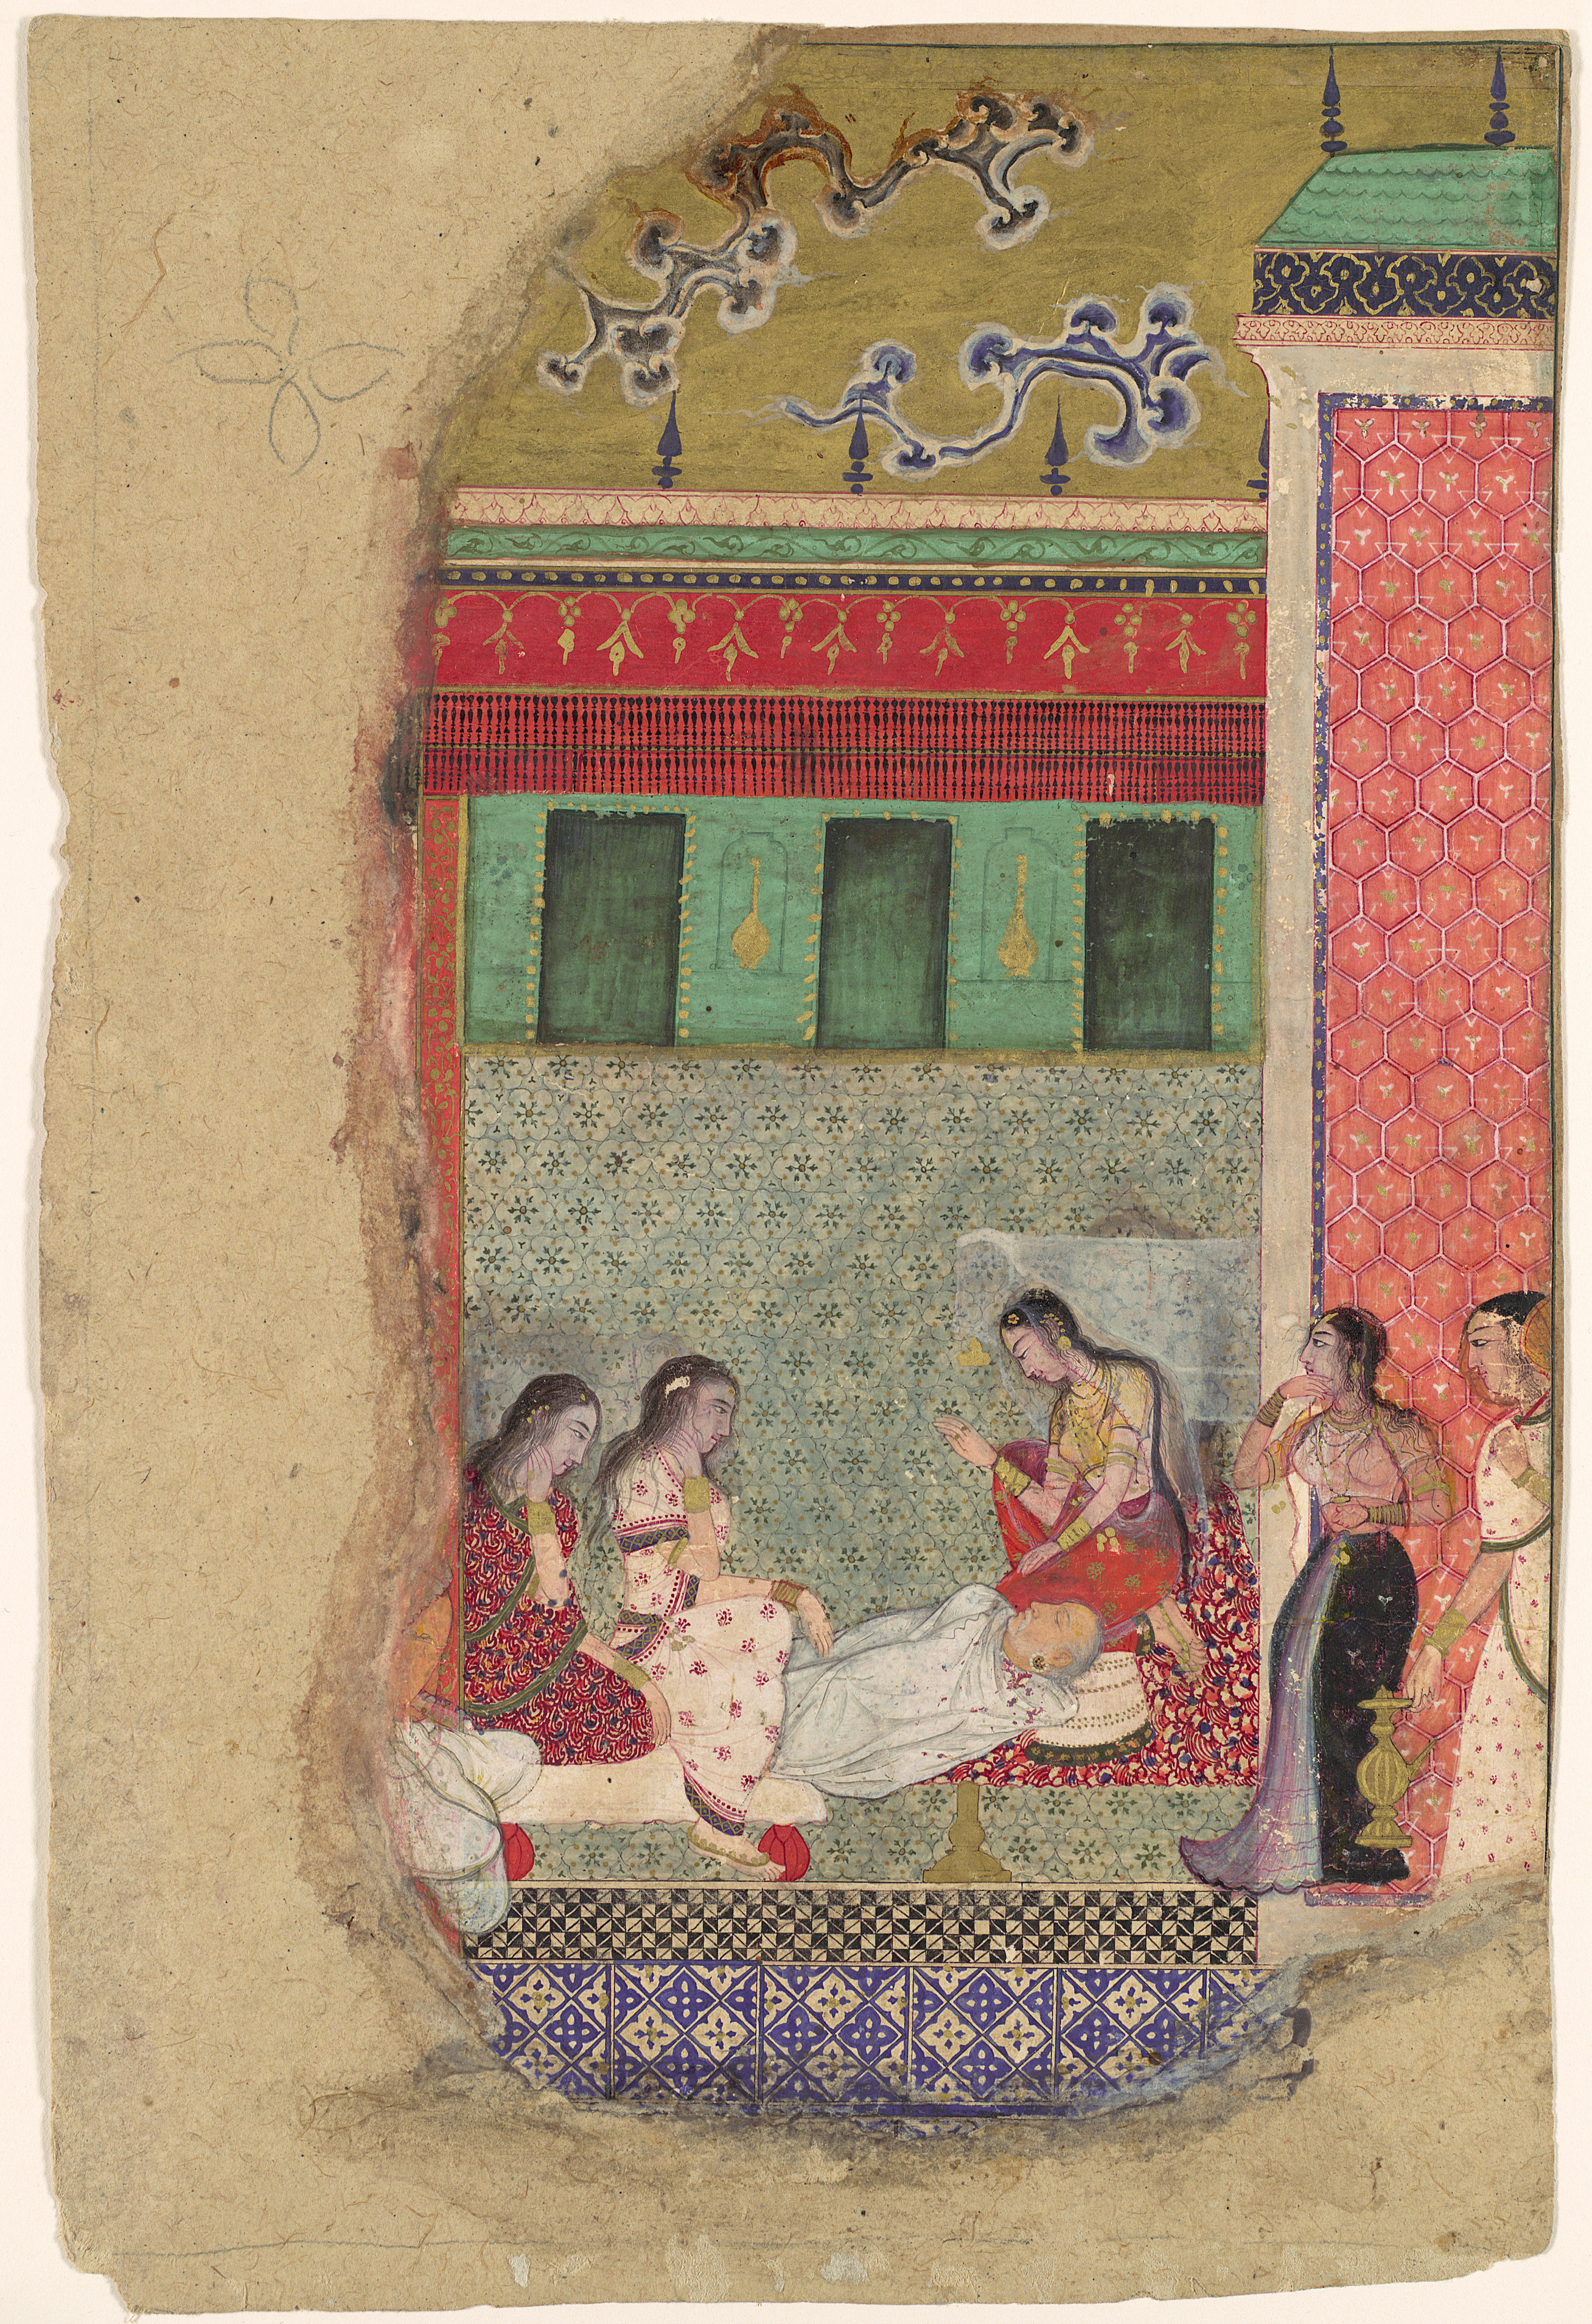 Quot The Death Of King Dasharatha The Father Of Rama Quot Folio